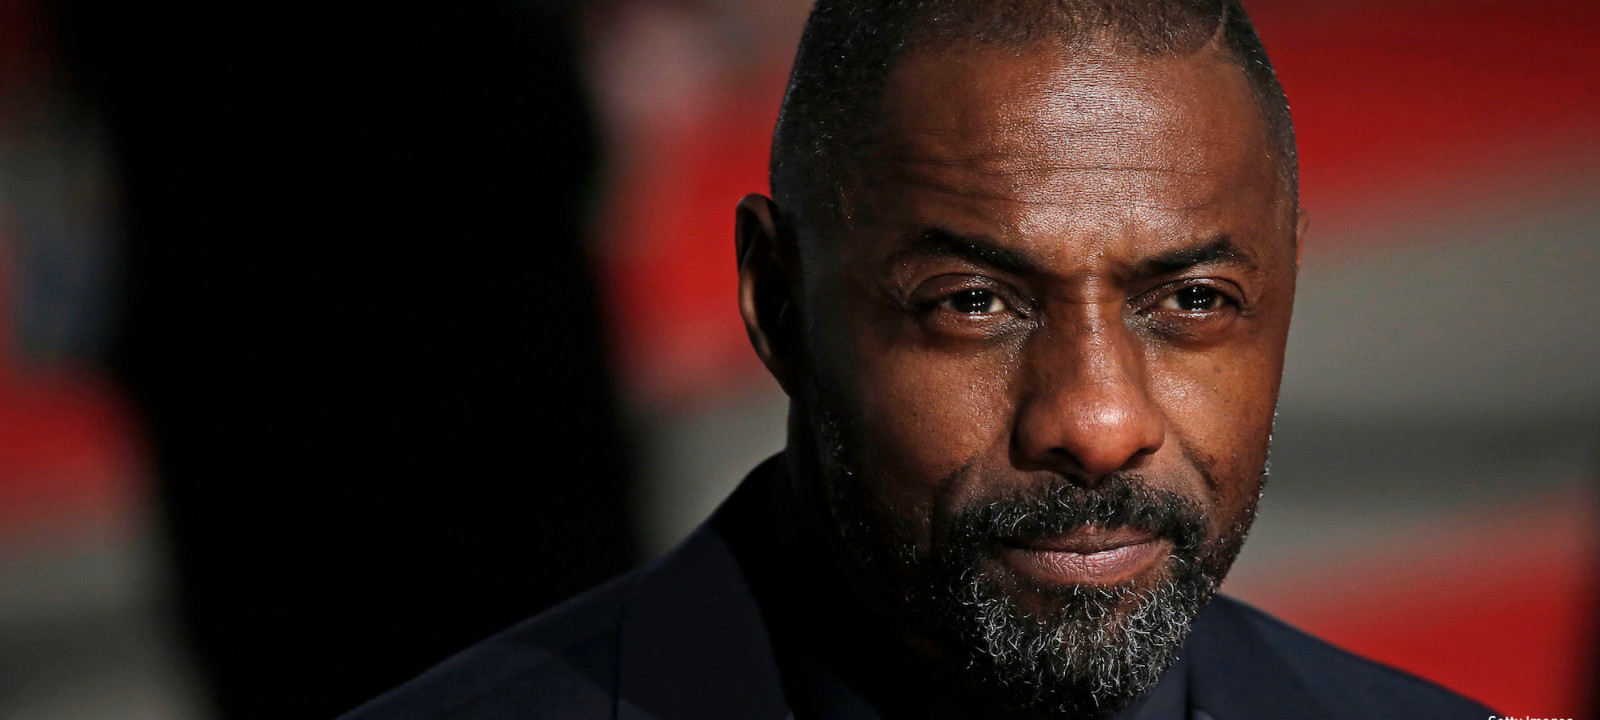 Idris Elba attends the EE British Academy Film Awards at The Royal Opera House on February 14, 2016 in London, England.